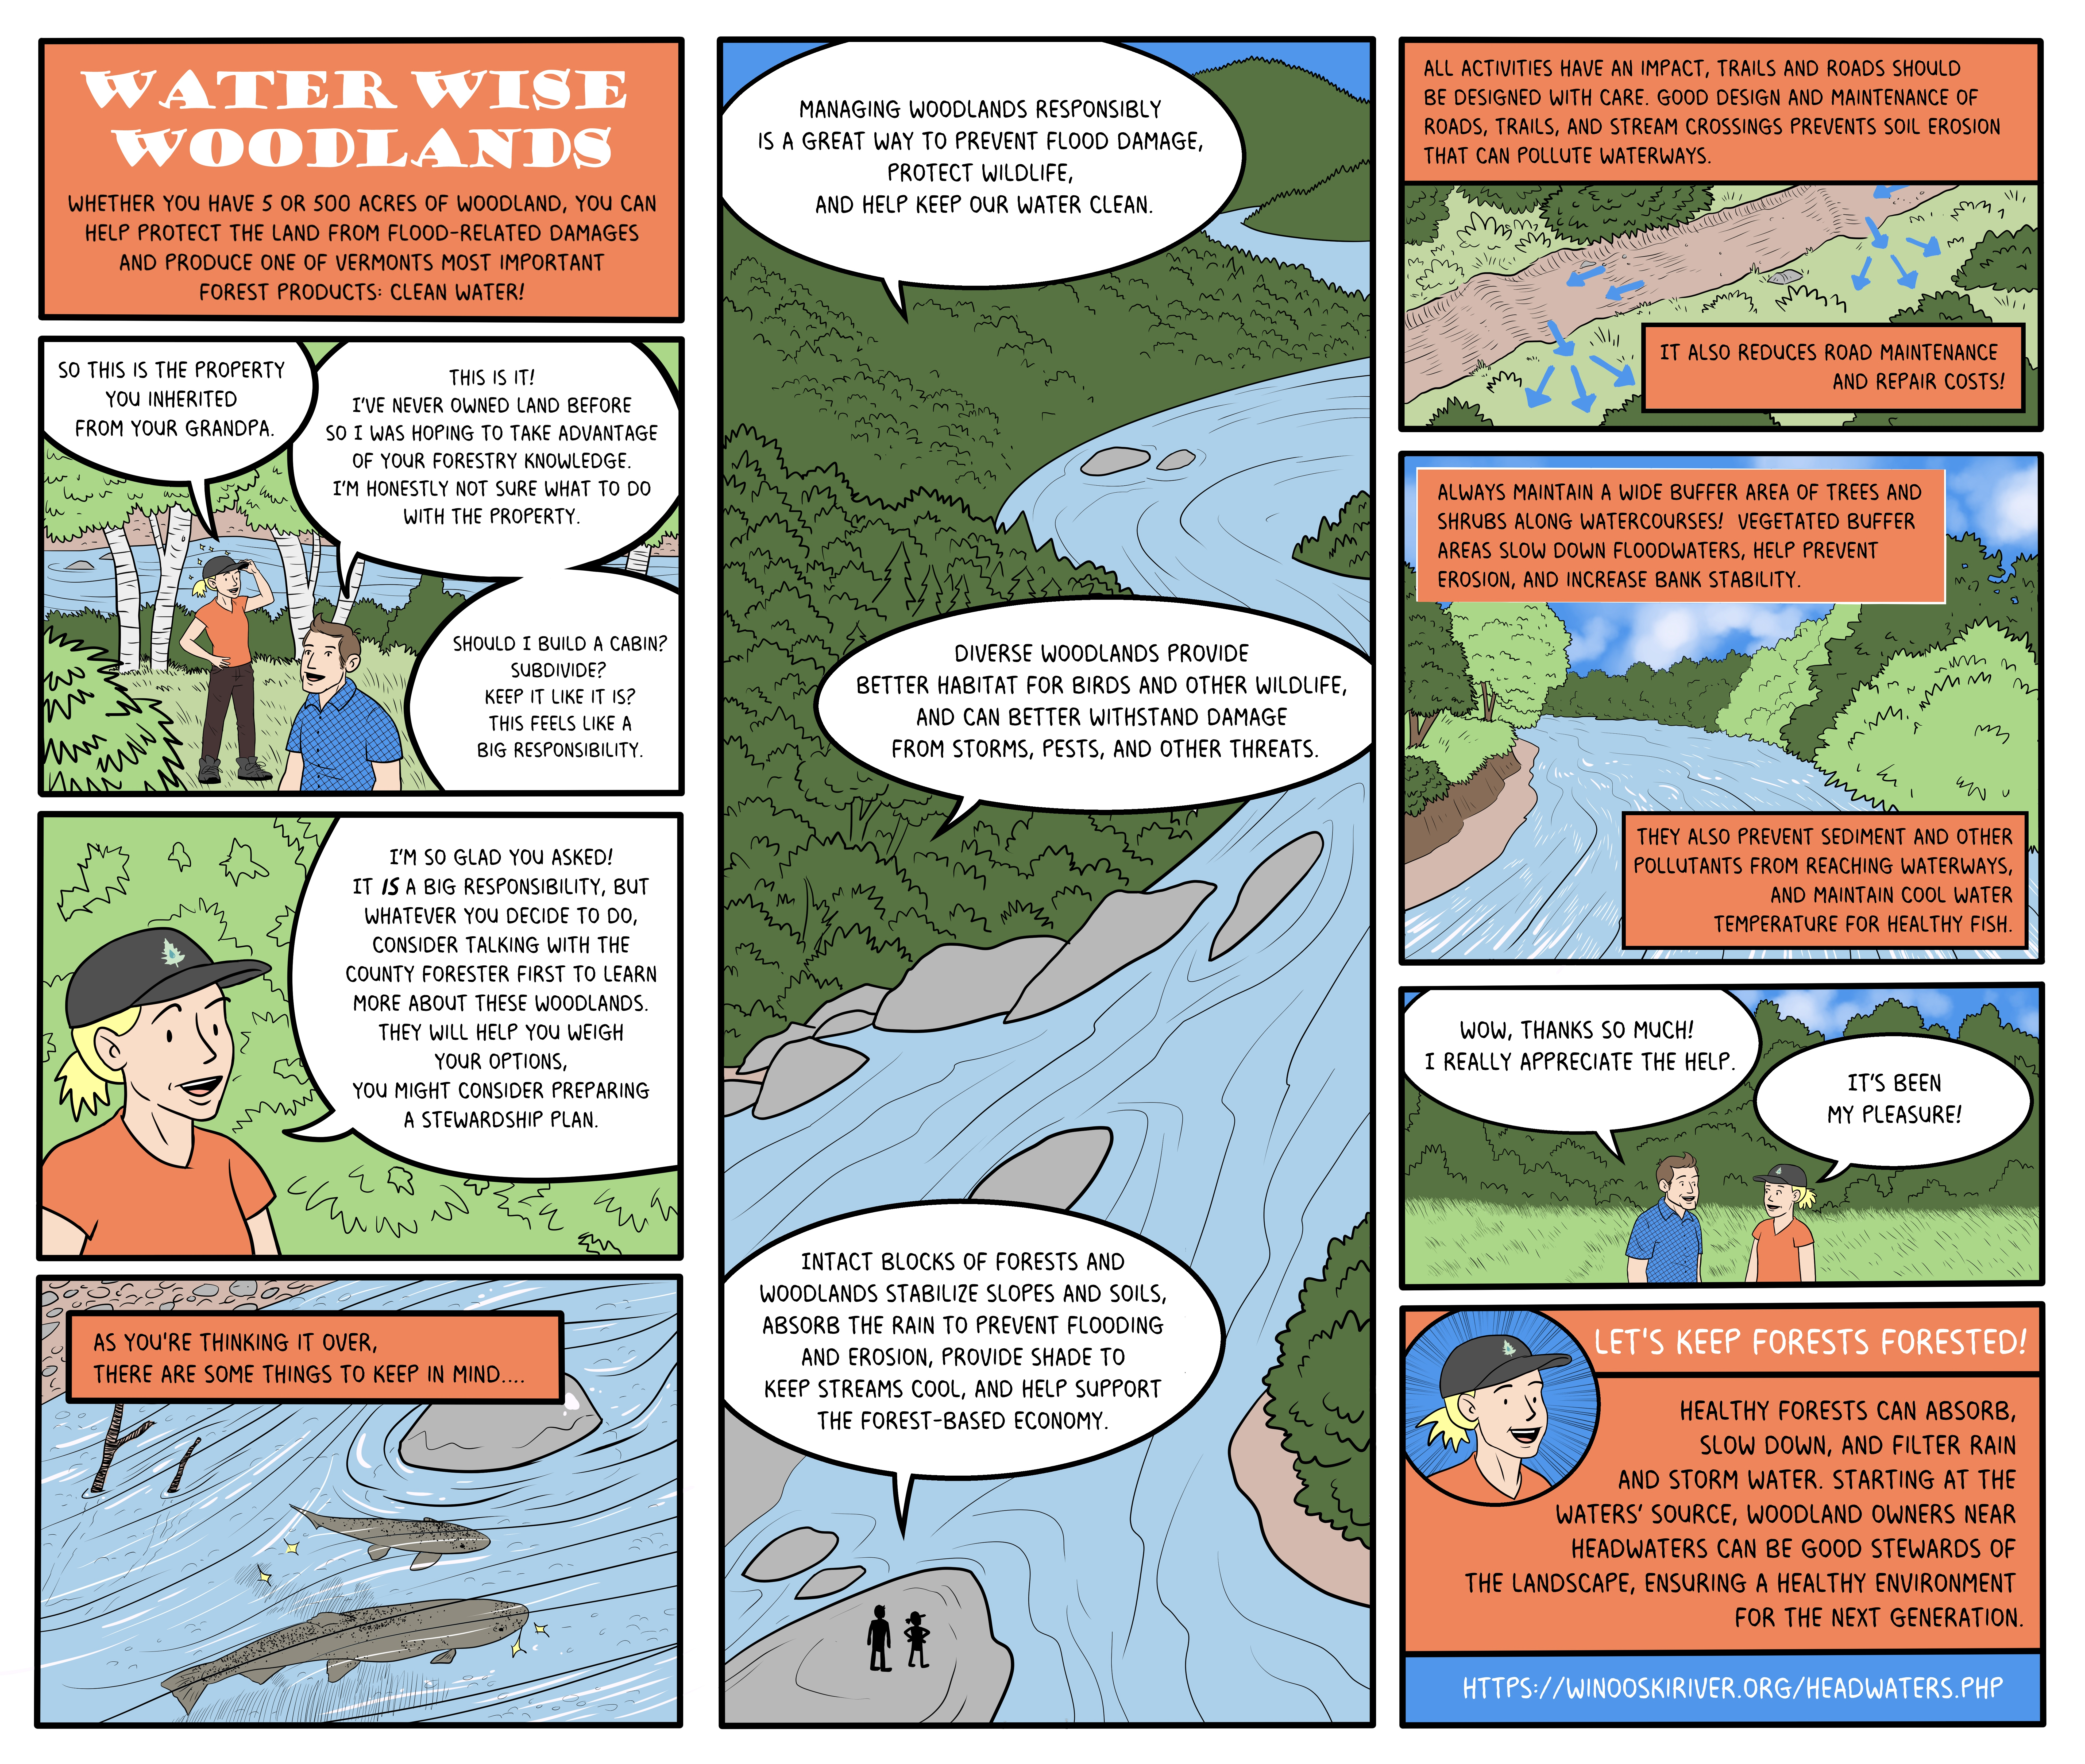 Water Wise Woodlands Image